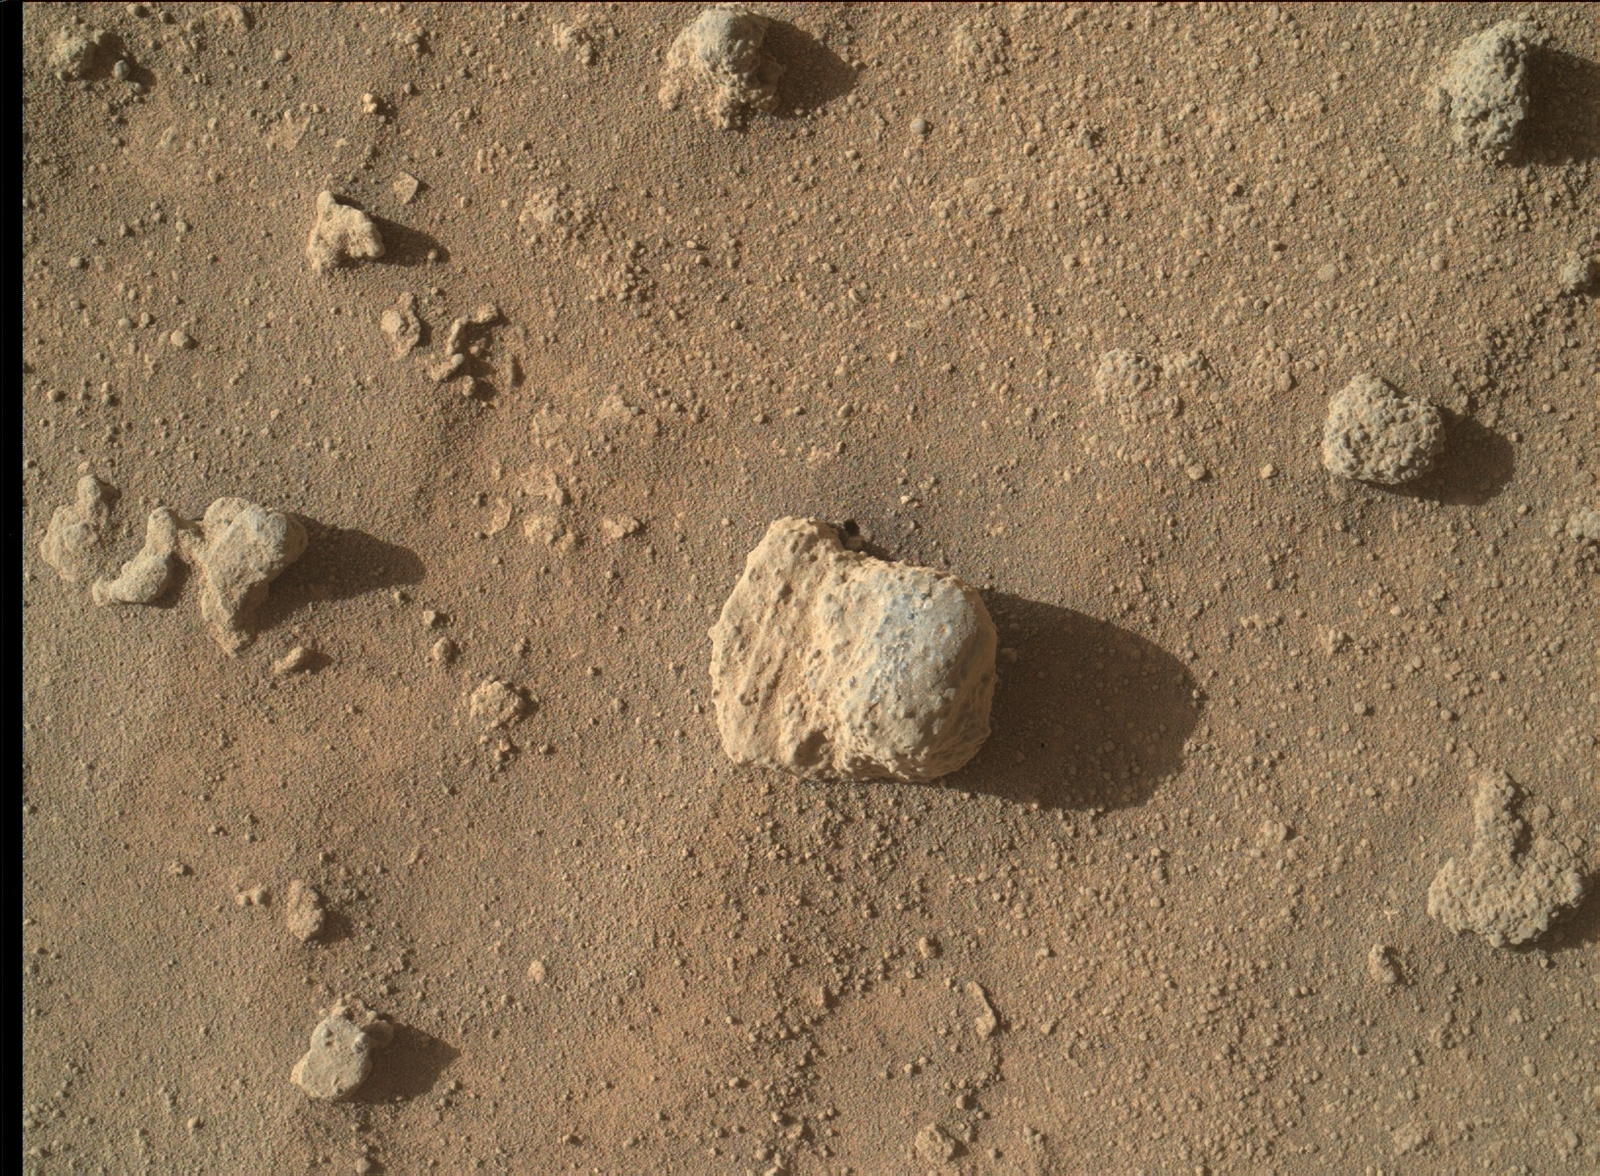 The nodule in the center of this March 10, 2016, image from the Mars Hand Lens Imager (MAHLI) on NASA's Curiosity Mars rover shows individual grains of sand and (on the right) laminations from the sandstone deposit in which the nodule formed..